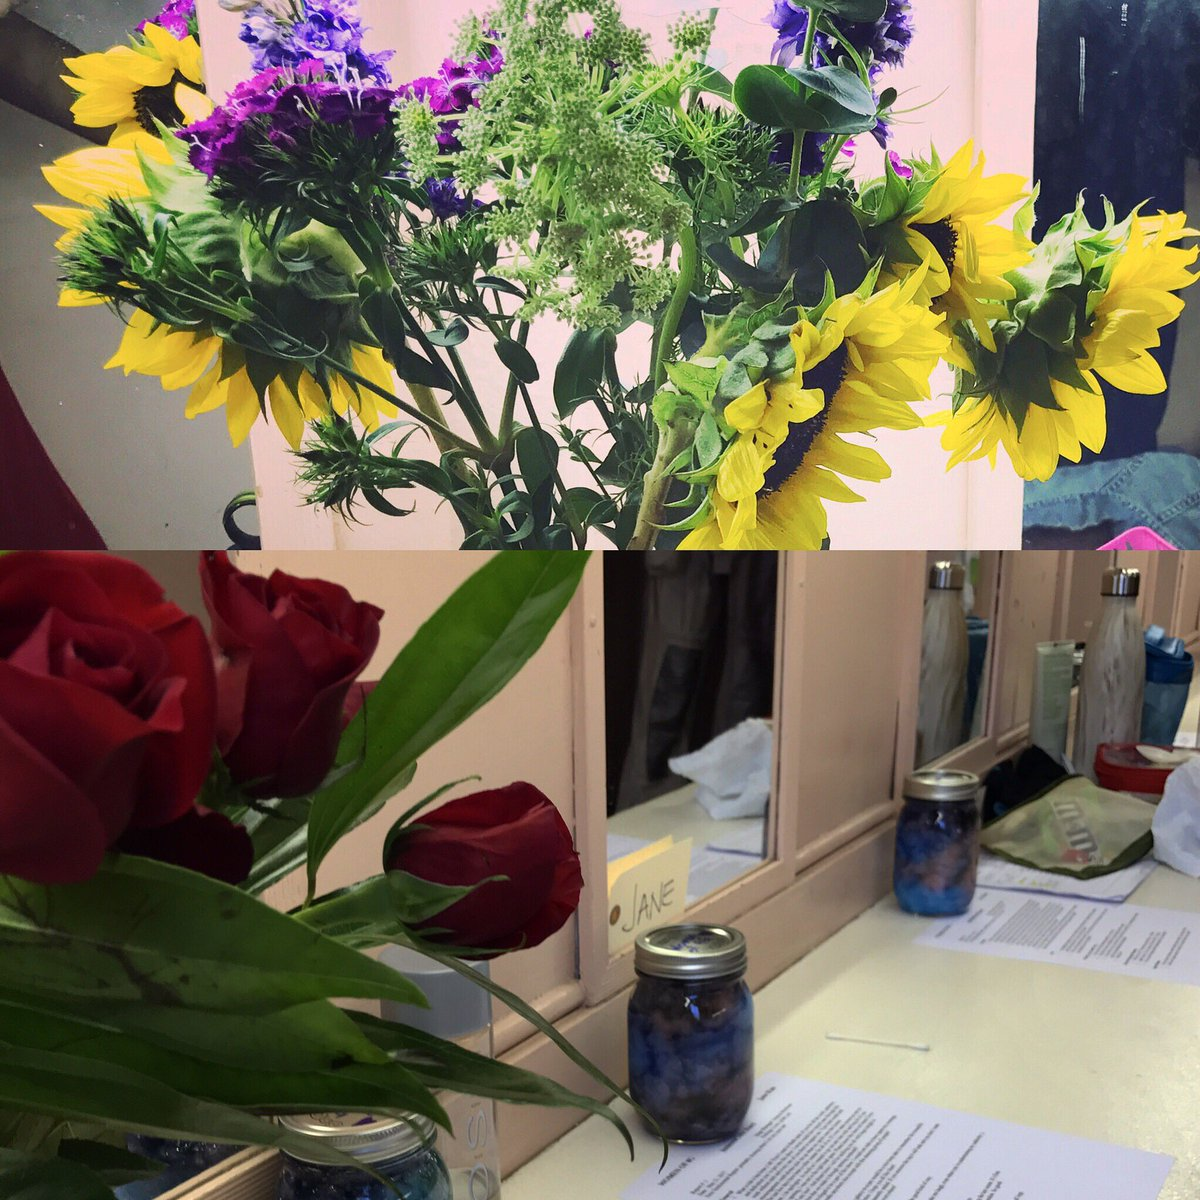 Our #dressingrooms pretty with cherished support! #womenof4G @DriveTheatre @FierceBackboner #scifi #theater  http://www. brownpapertickets.com/event/2919599  &nbsp;   <br>http://pic.twitter.com/MRL4YxPi7Y &ndash; à Zephyr Theatre